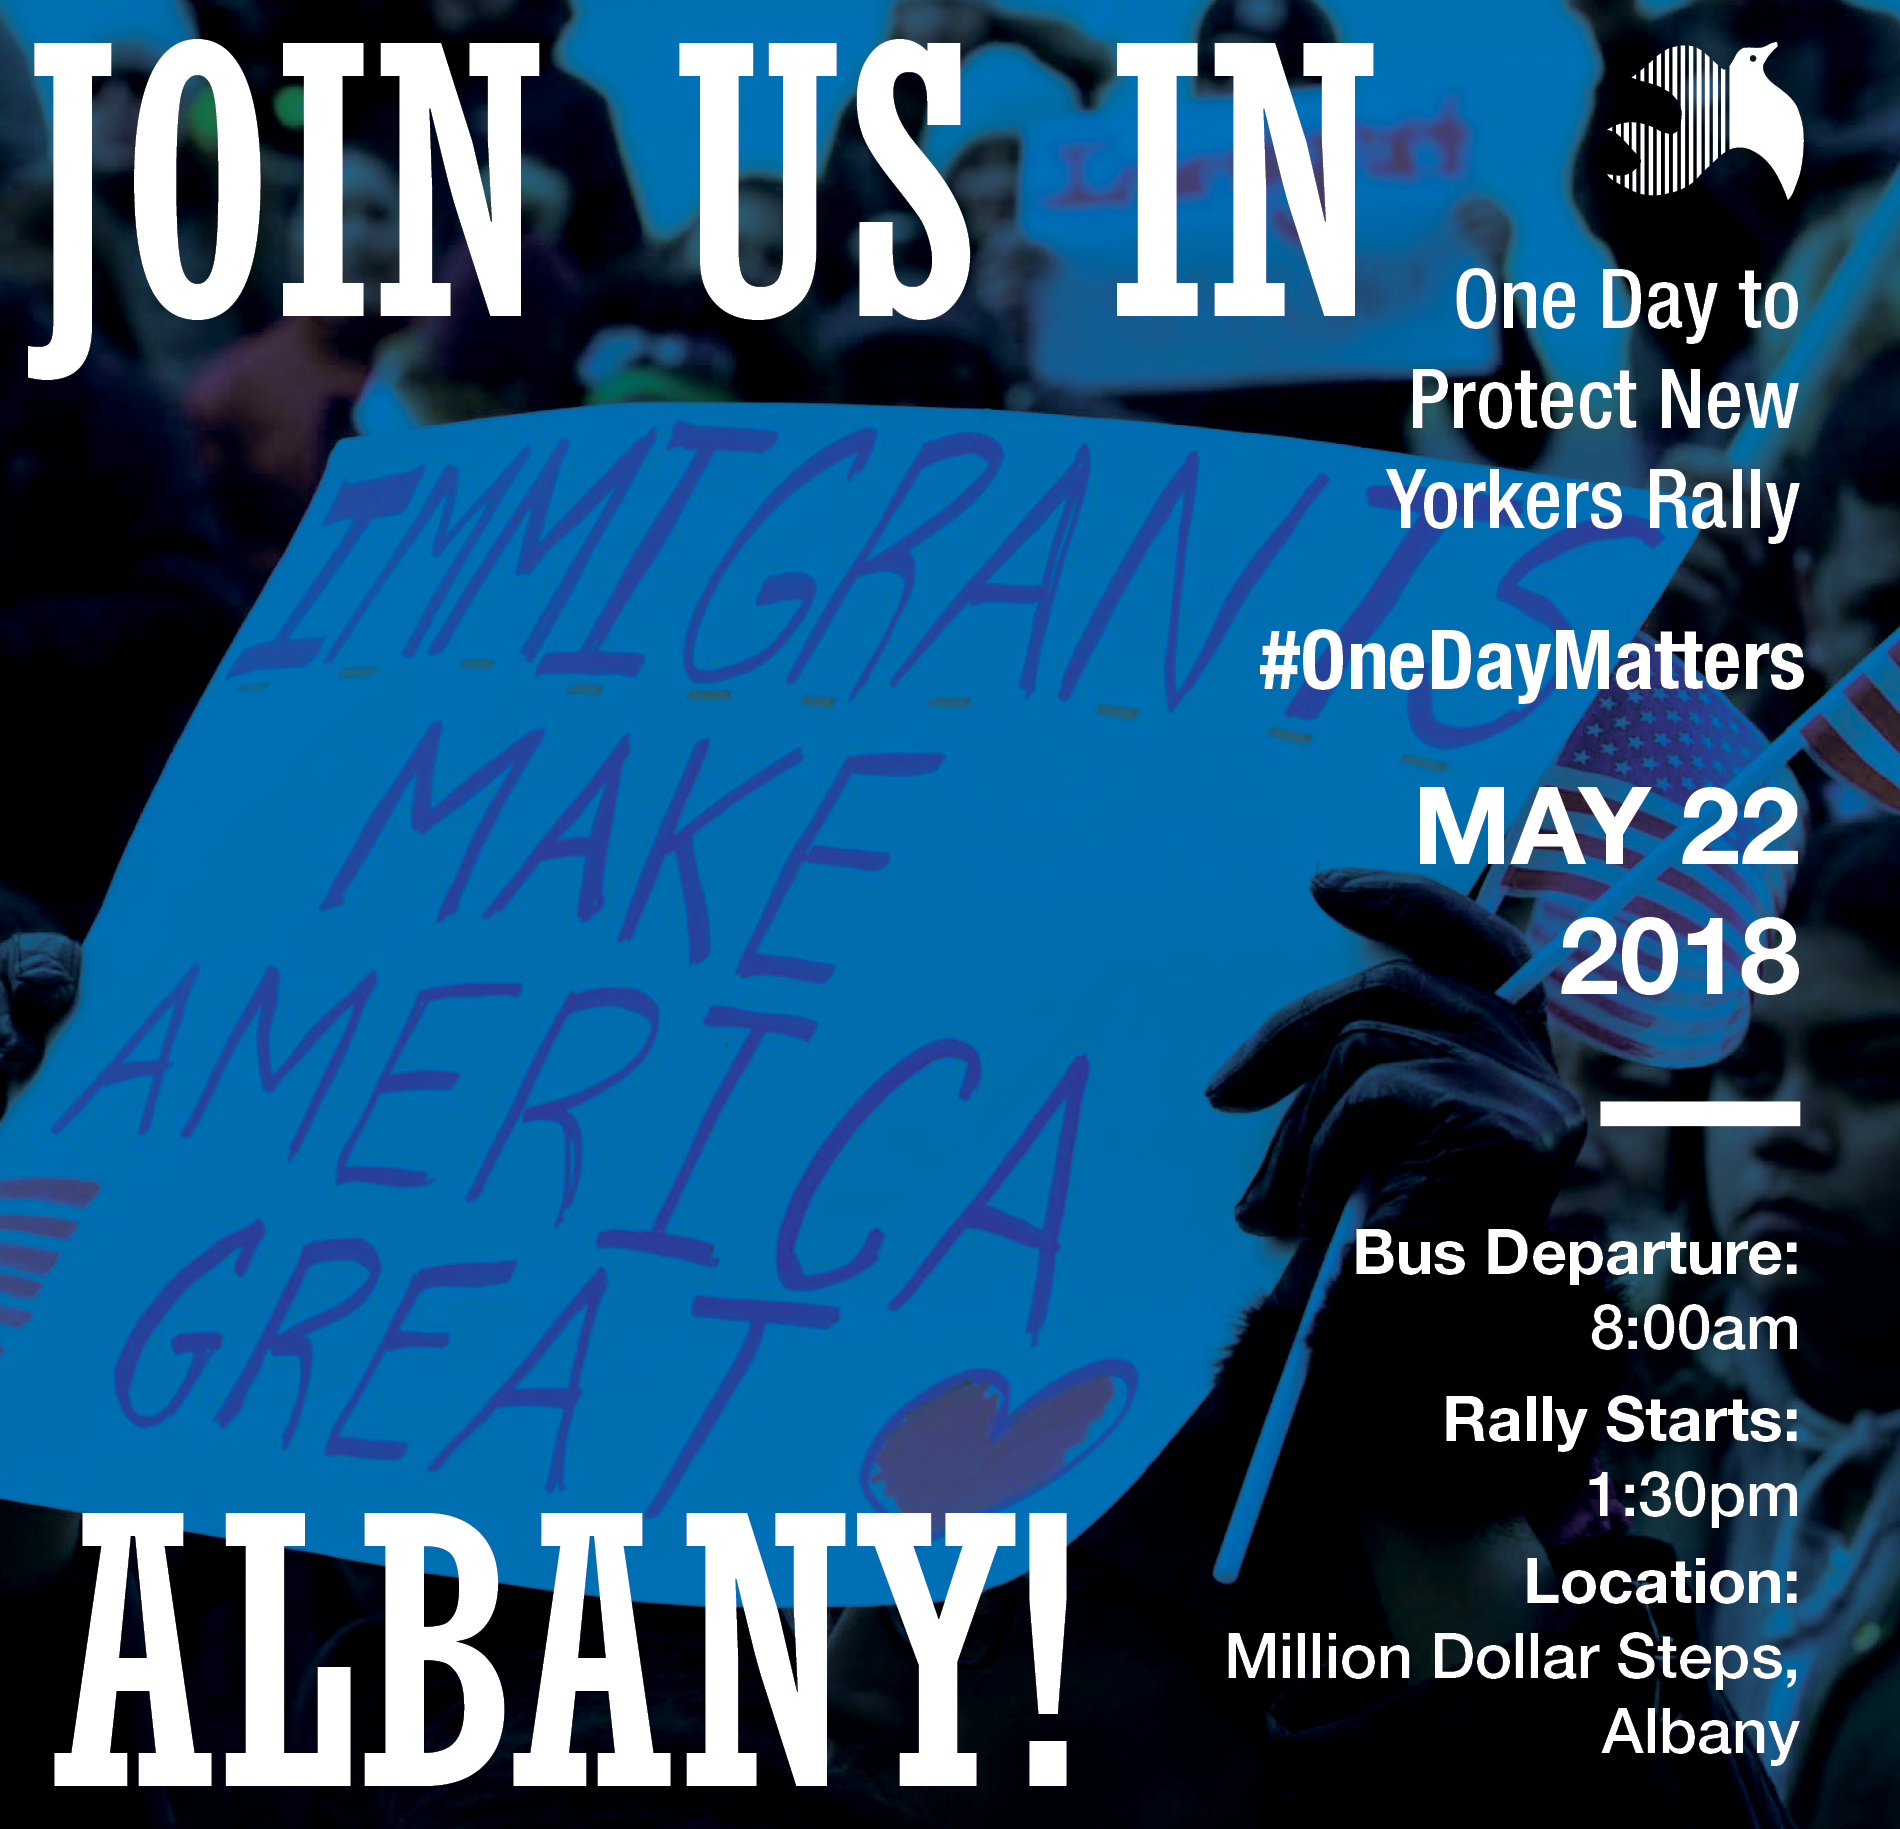 Join Us in Albany on May 22